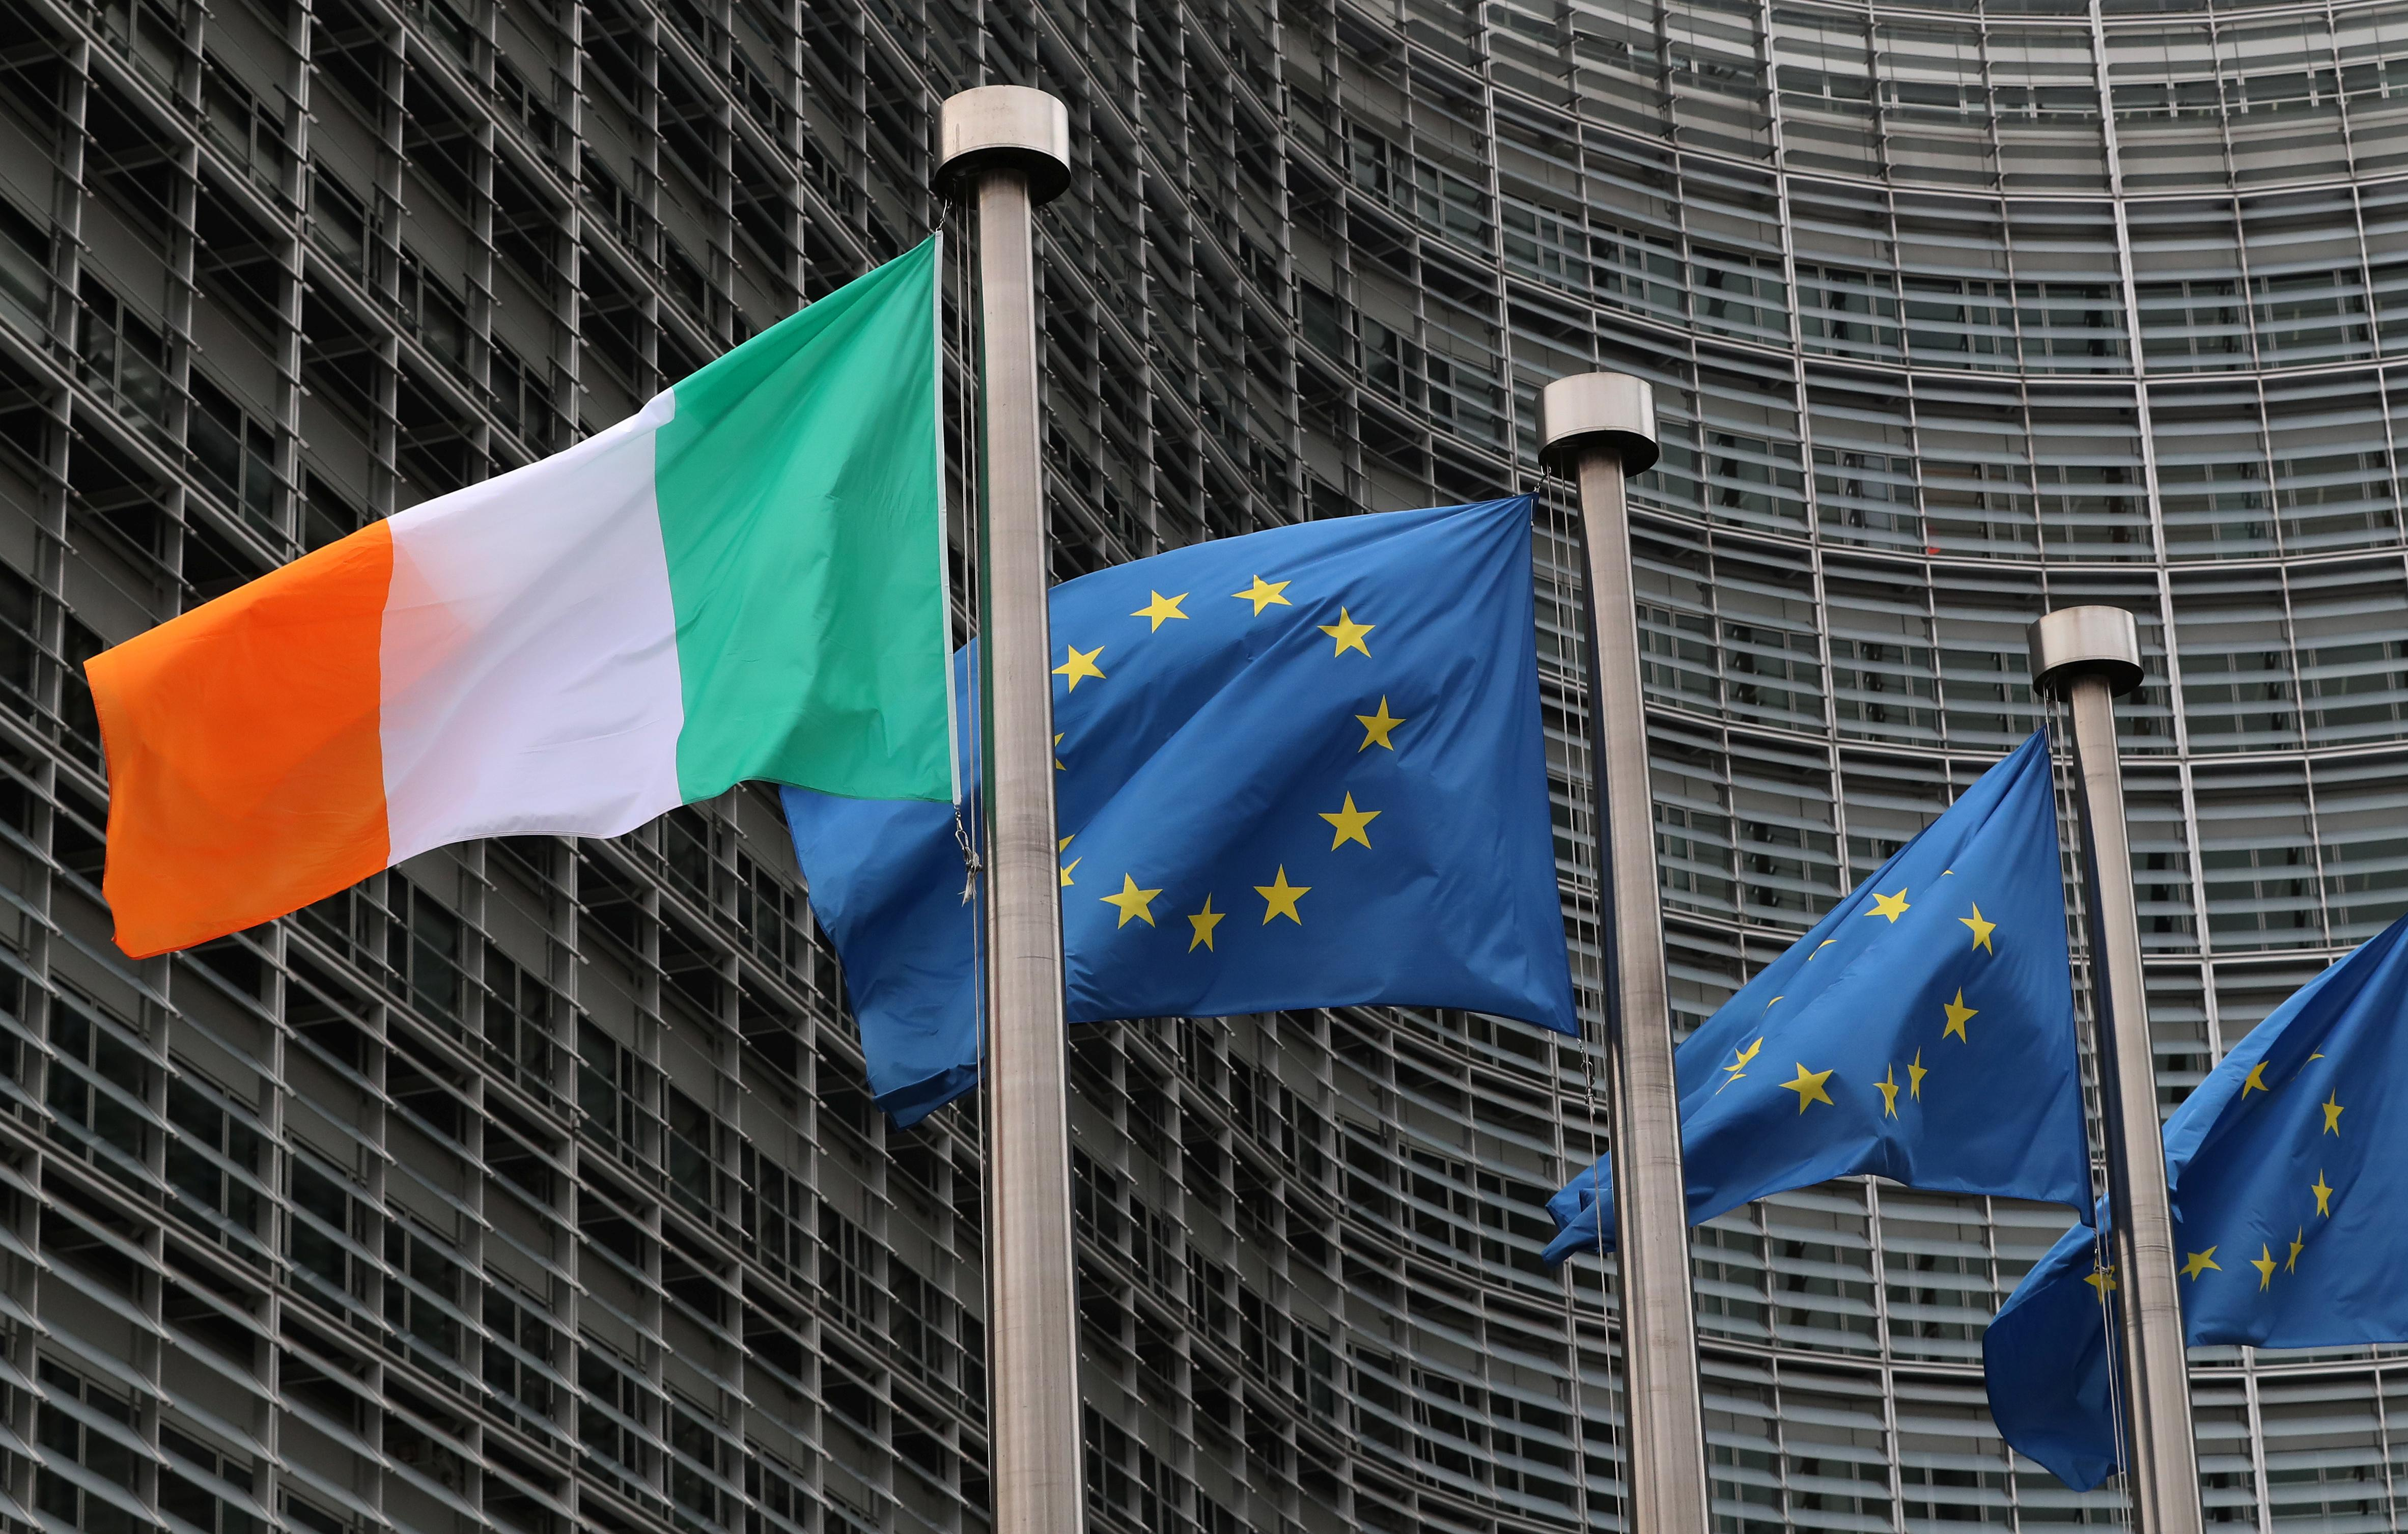 Brexit risks not fully priced in by market - Irish debt agency official